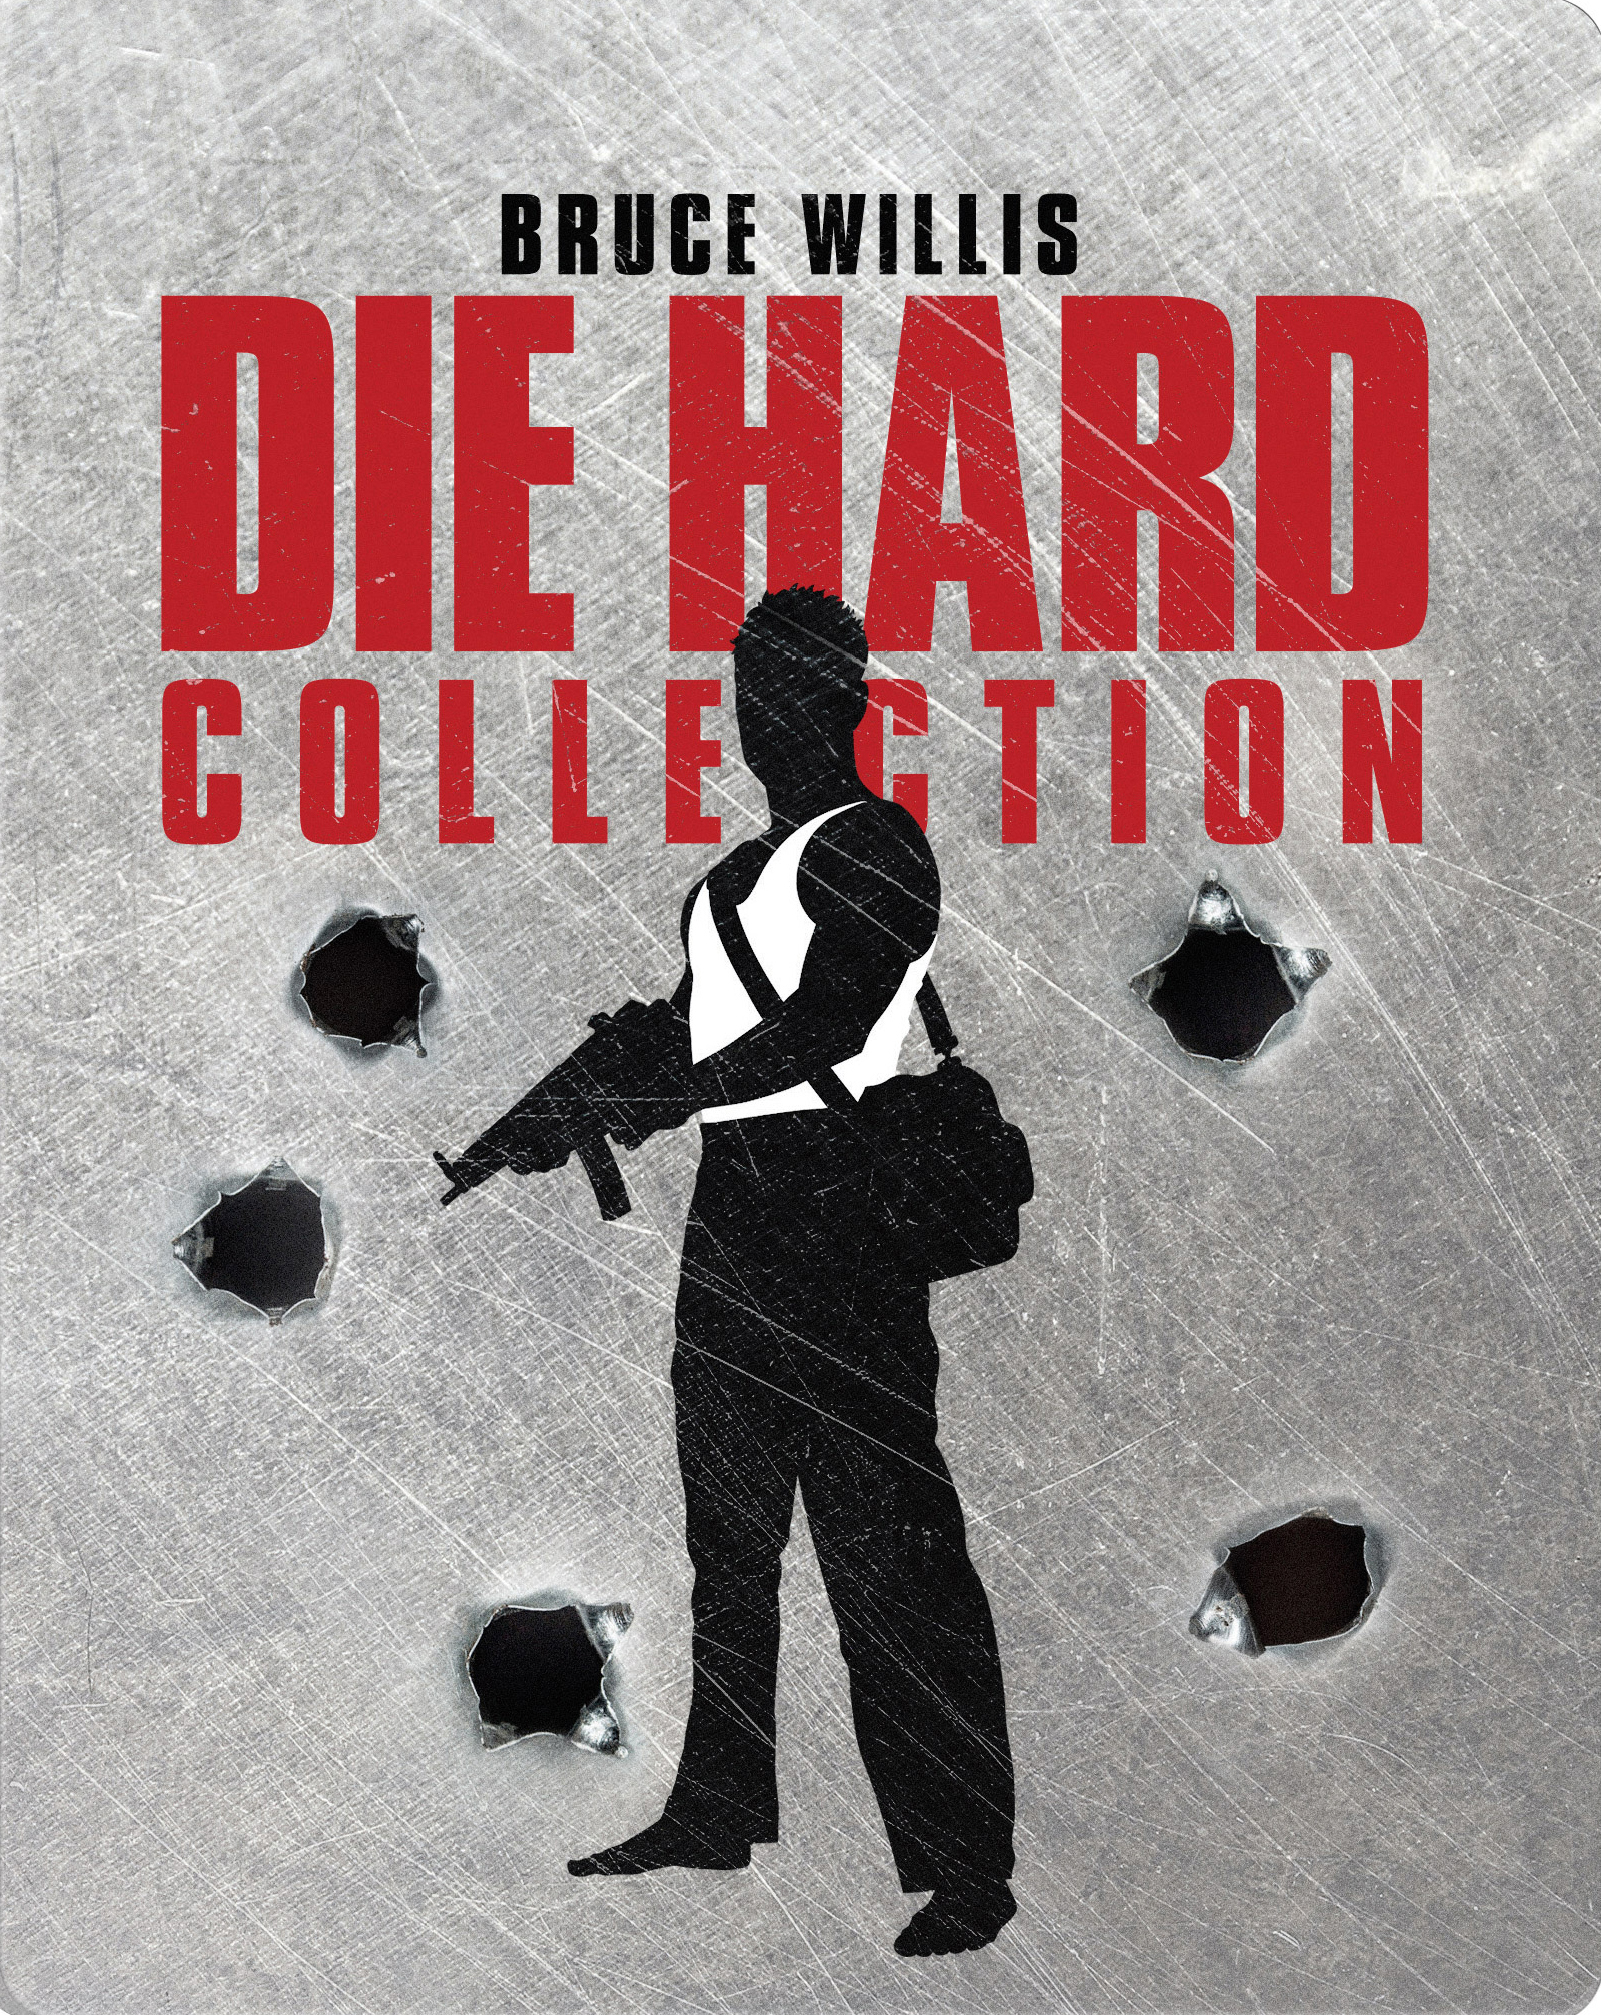 Die Collection Die Hard Collection [steelbook] [blu-ray] - Best Buy